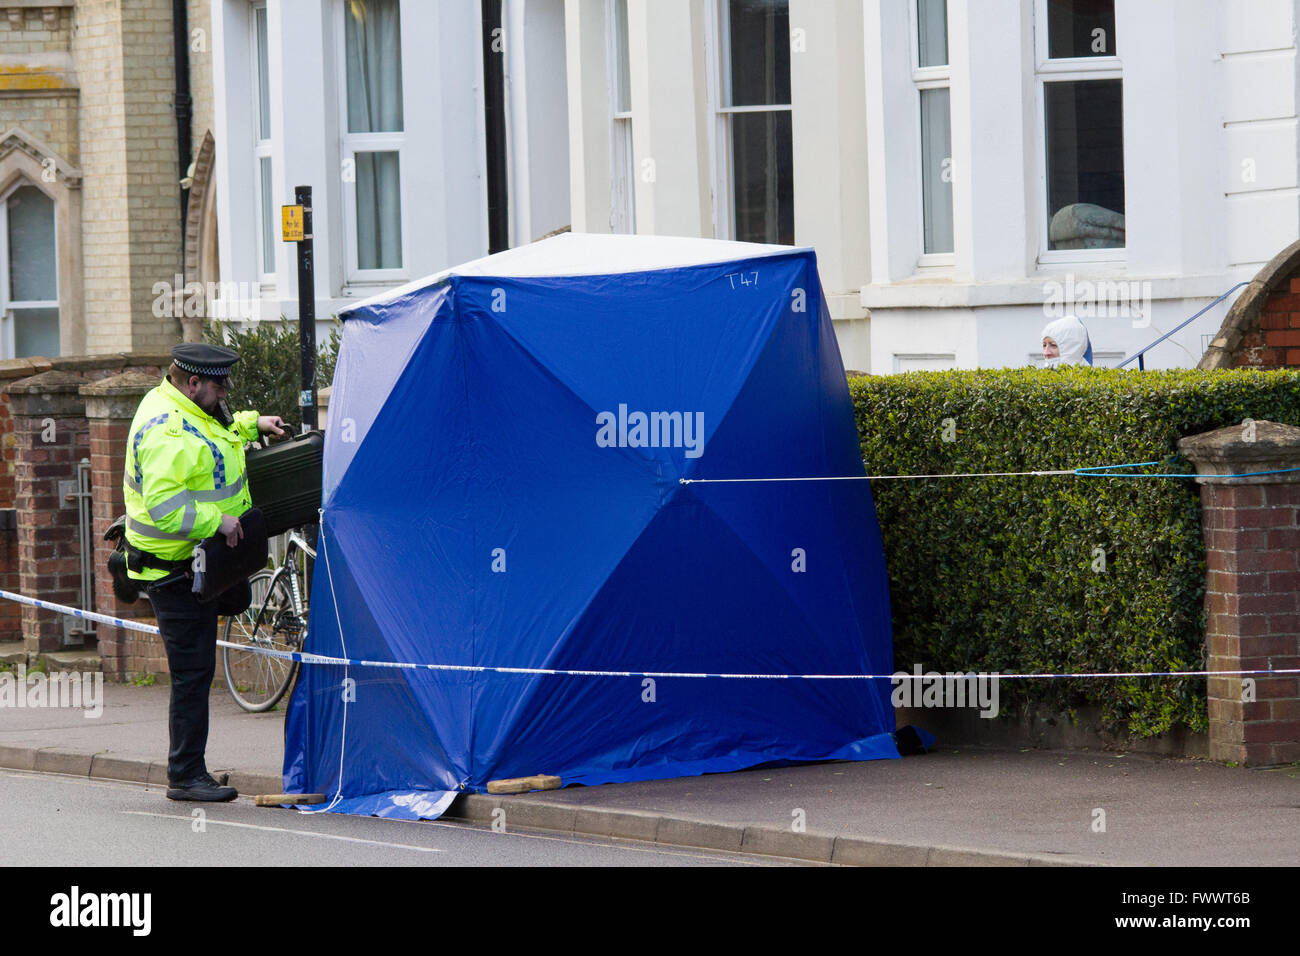 Oxford, UK. 7th April, 2016. Police forensic in Iffley Rd, Oxford after a body was found in a property. Credit: - Stock Image